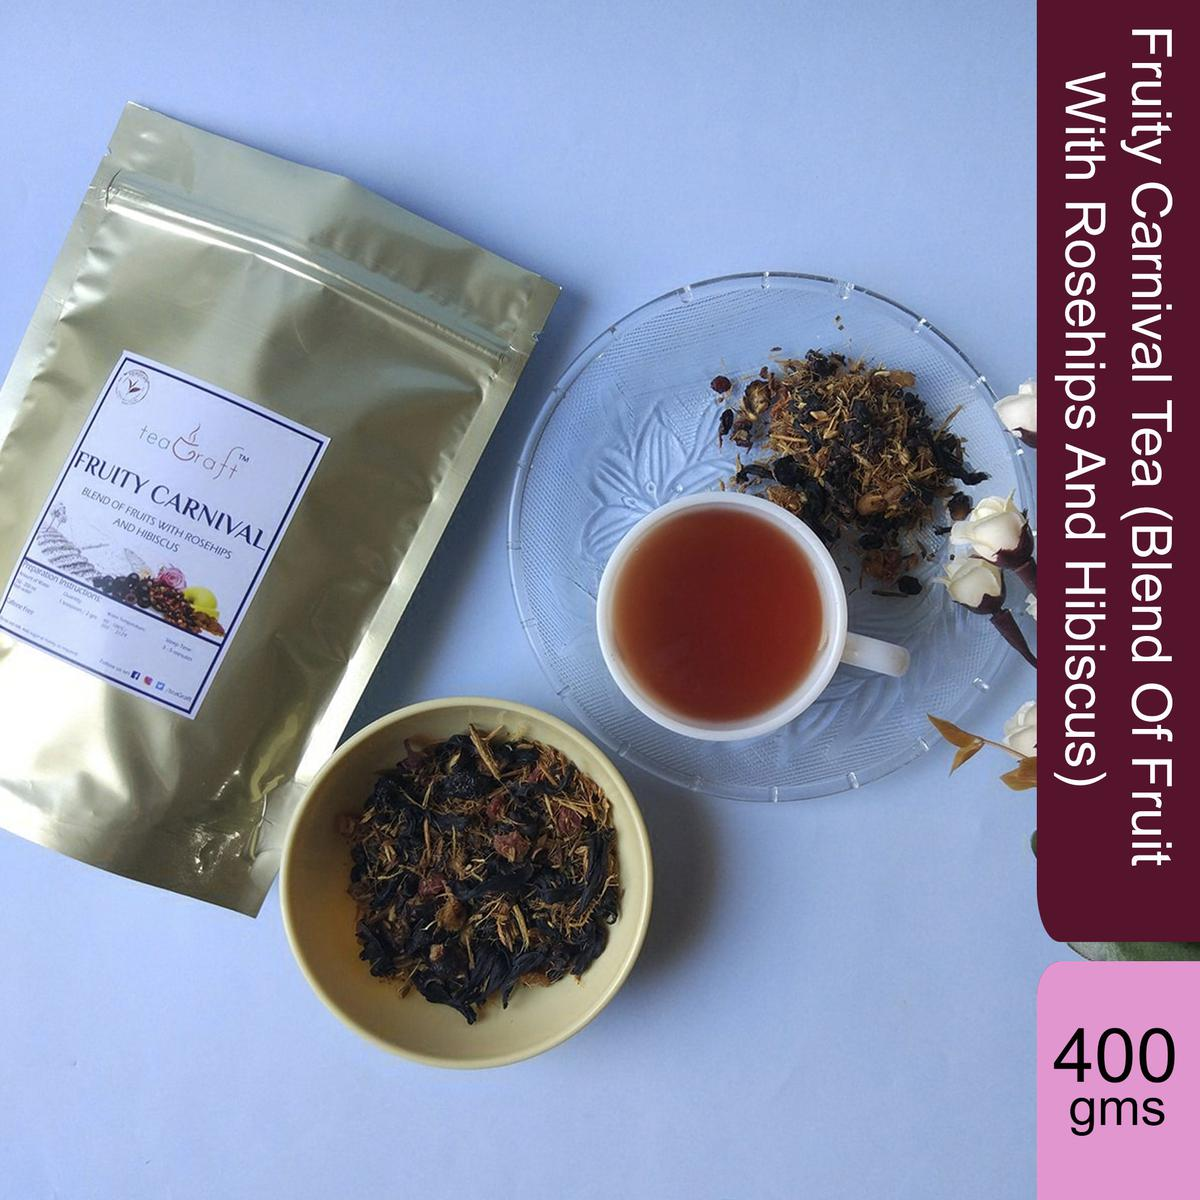 Fruity Carnival Tea (Blend Of Fruit With Rosehips And Hibiscus) - 400 Gms